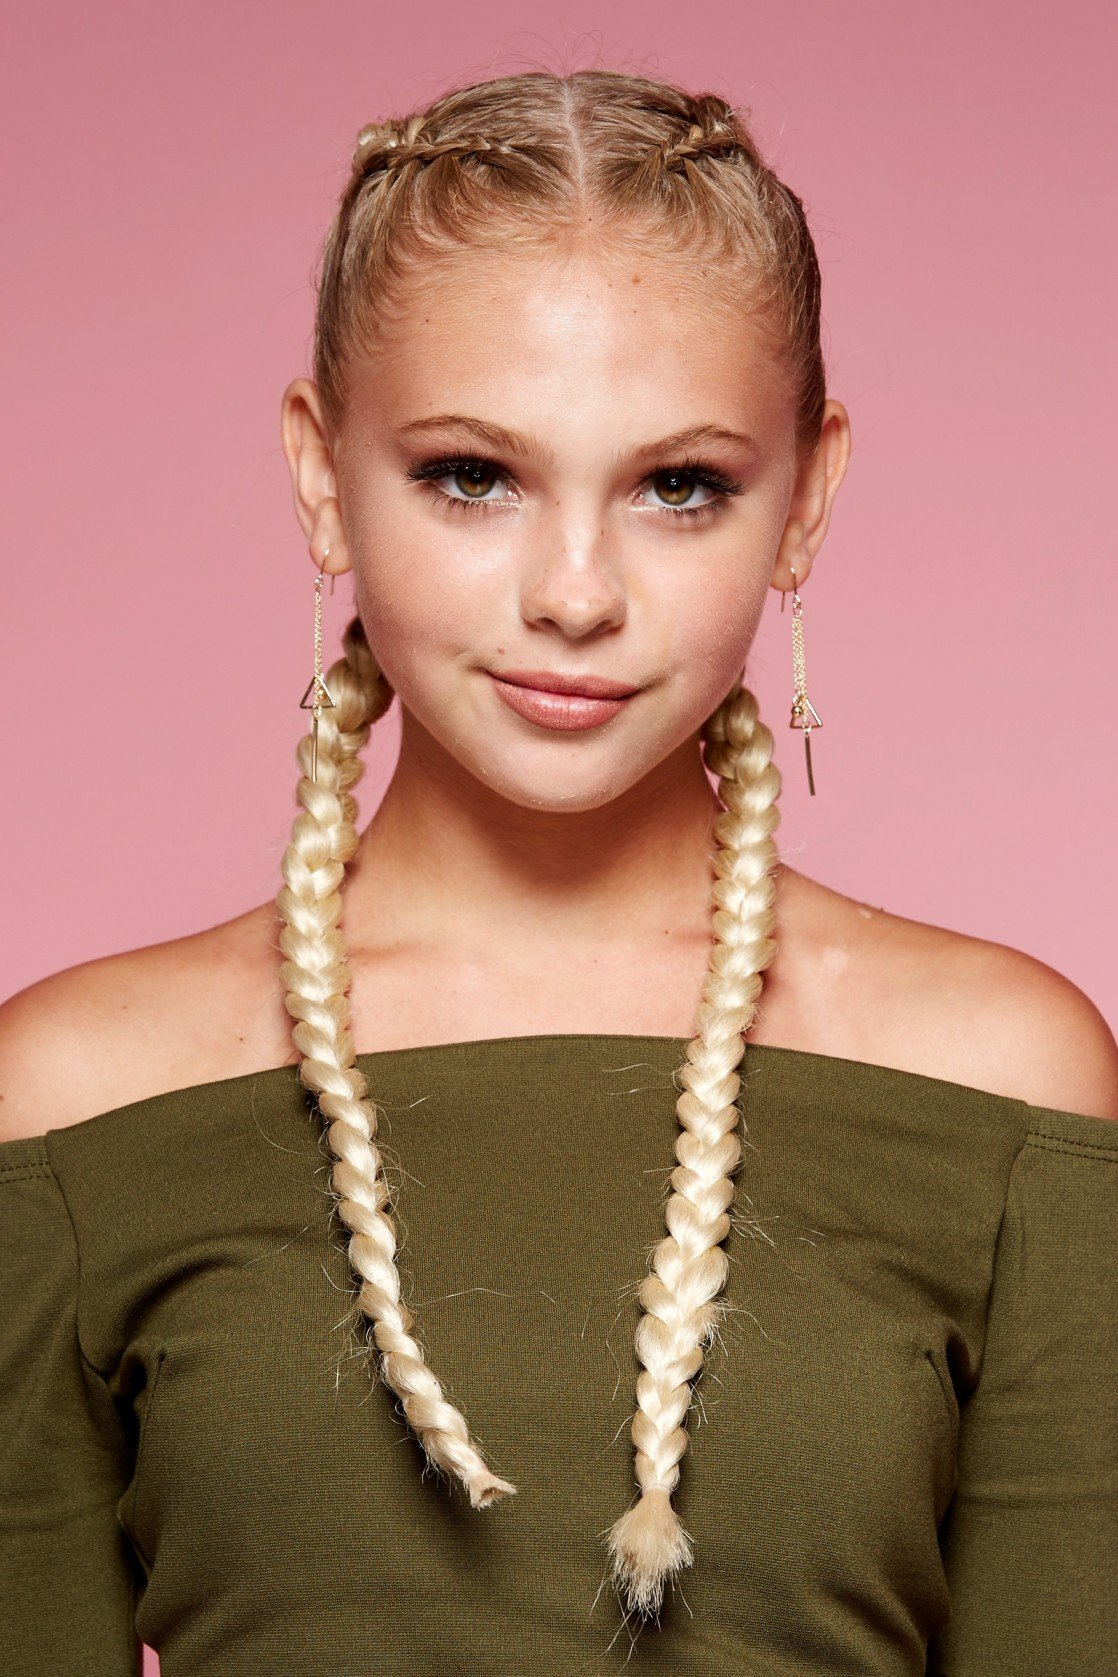 young-blonde-in-pigtails